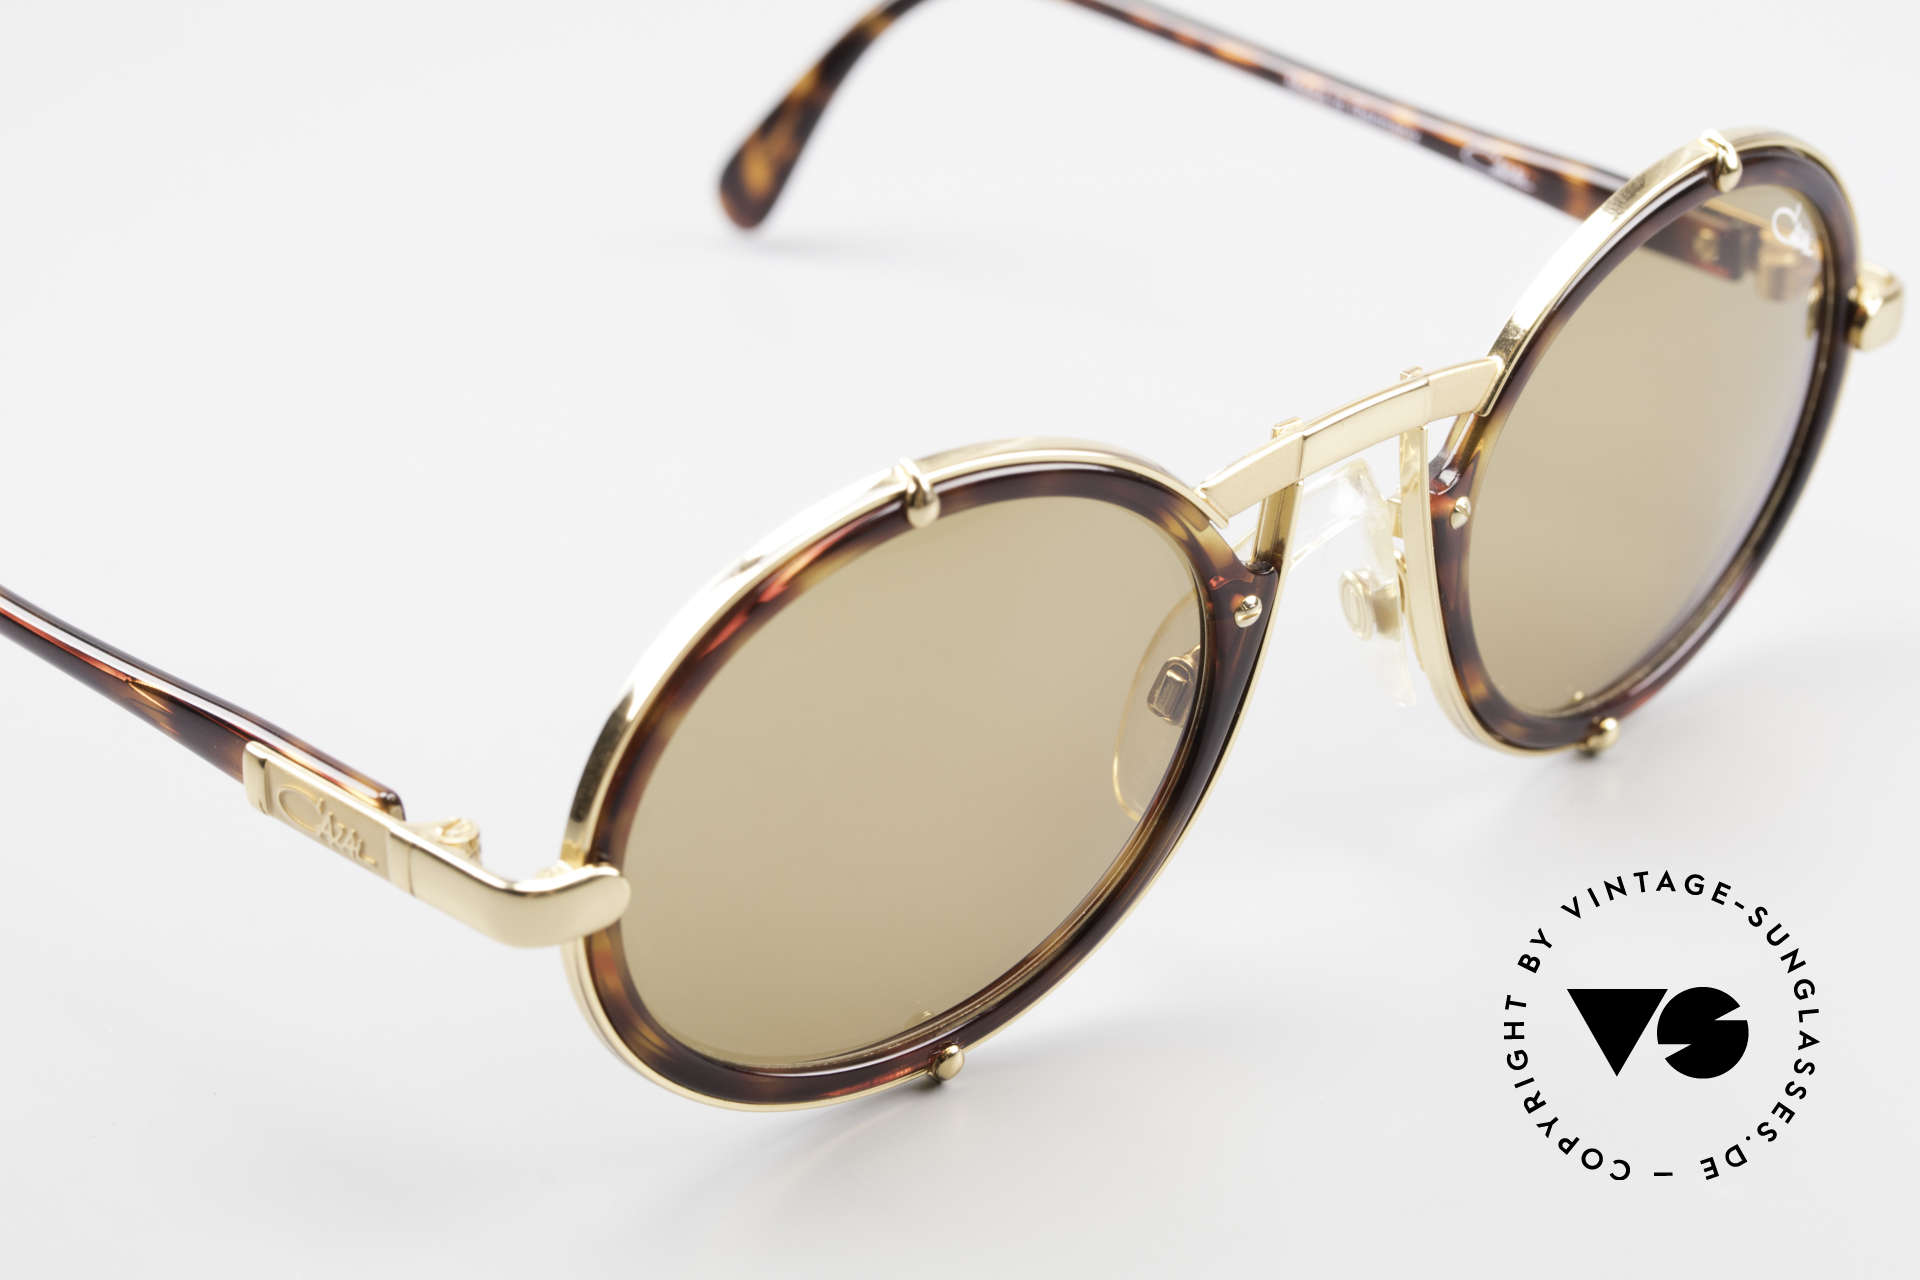 Cazal 644 Round Cazal 90's Sunglasses, unisex design with solid brown lenses (100% UV), Made for Men and Women